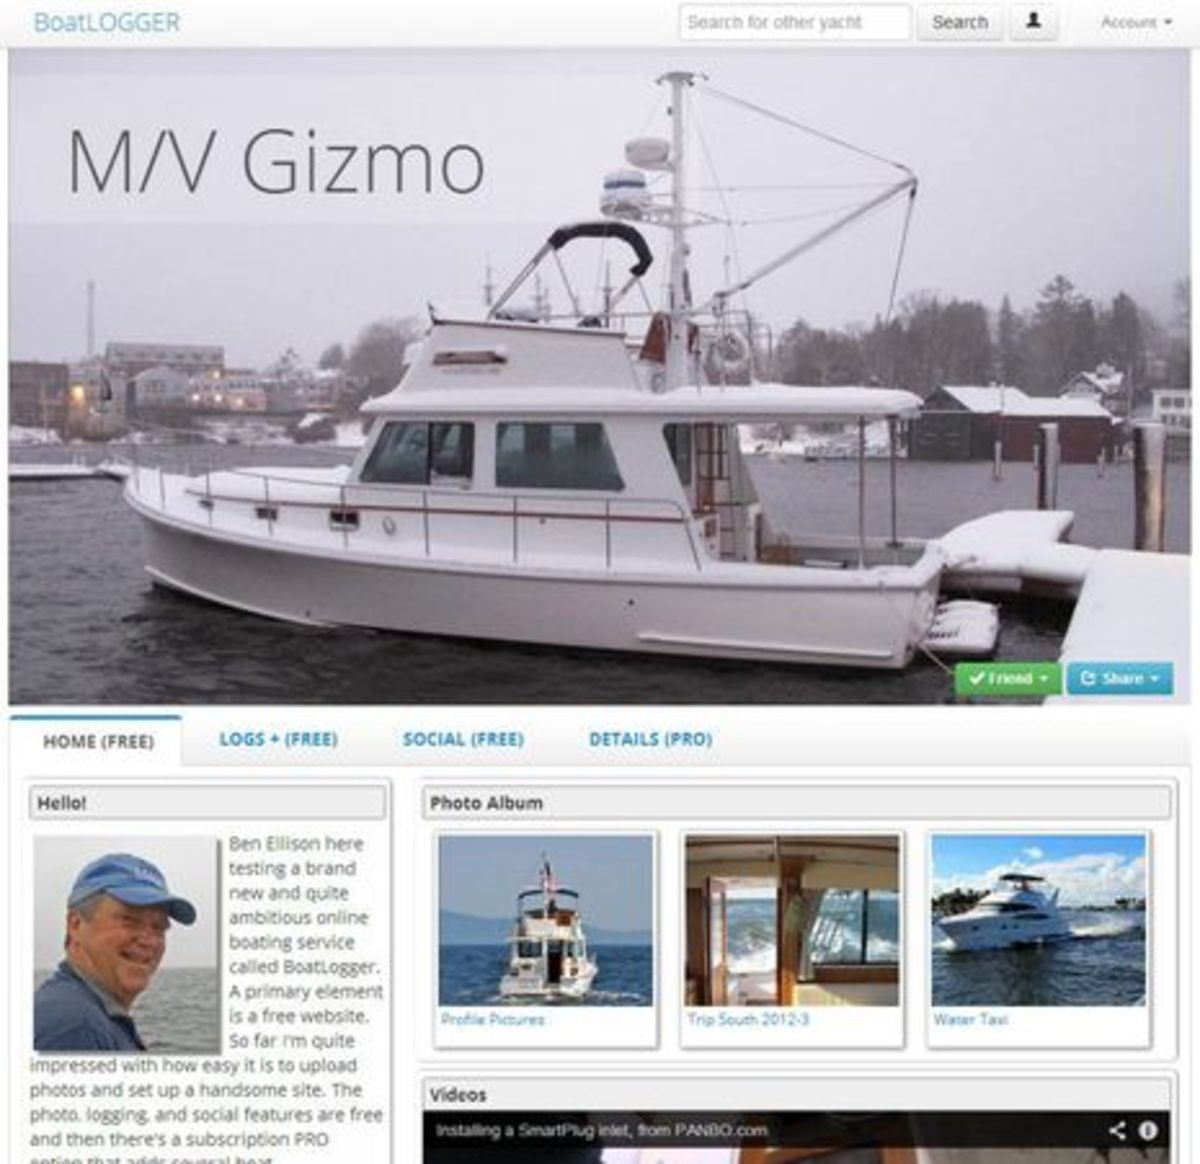 BoatLogger_beta_test_Home_page_cPanbo.jpg